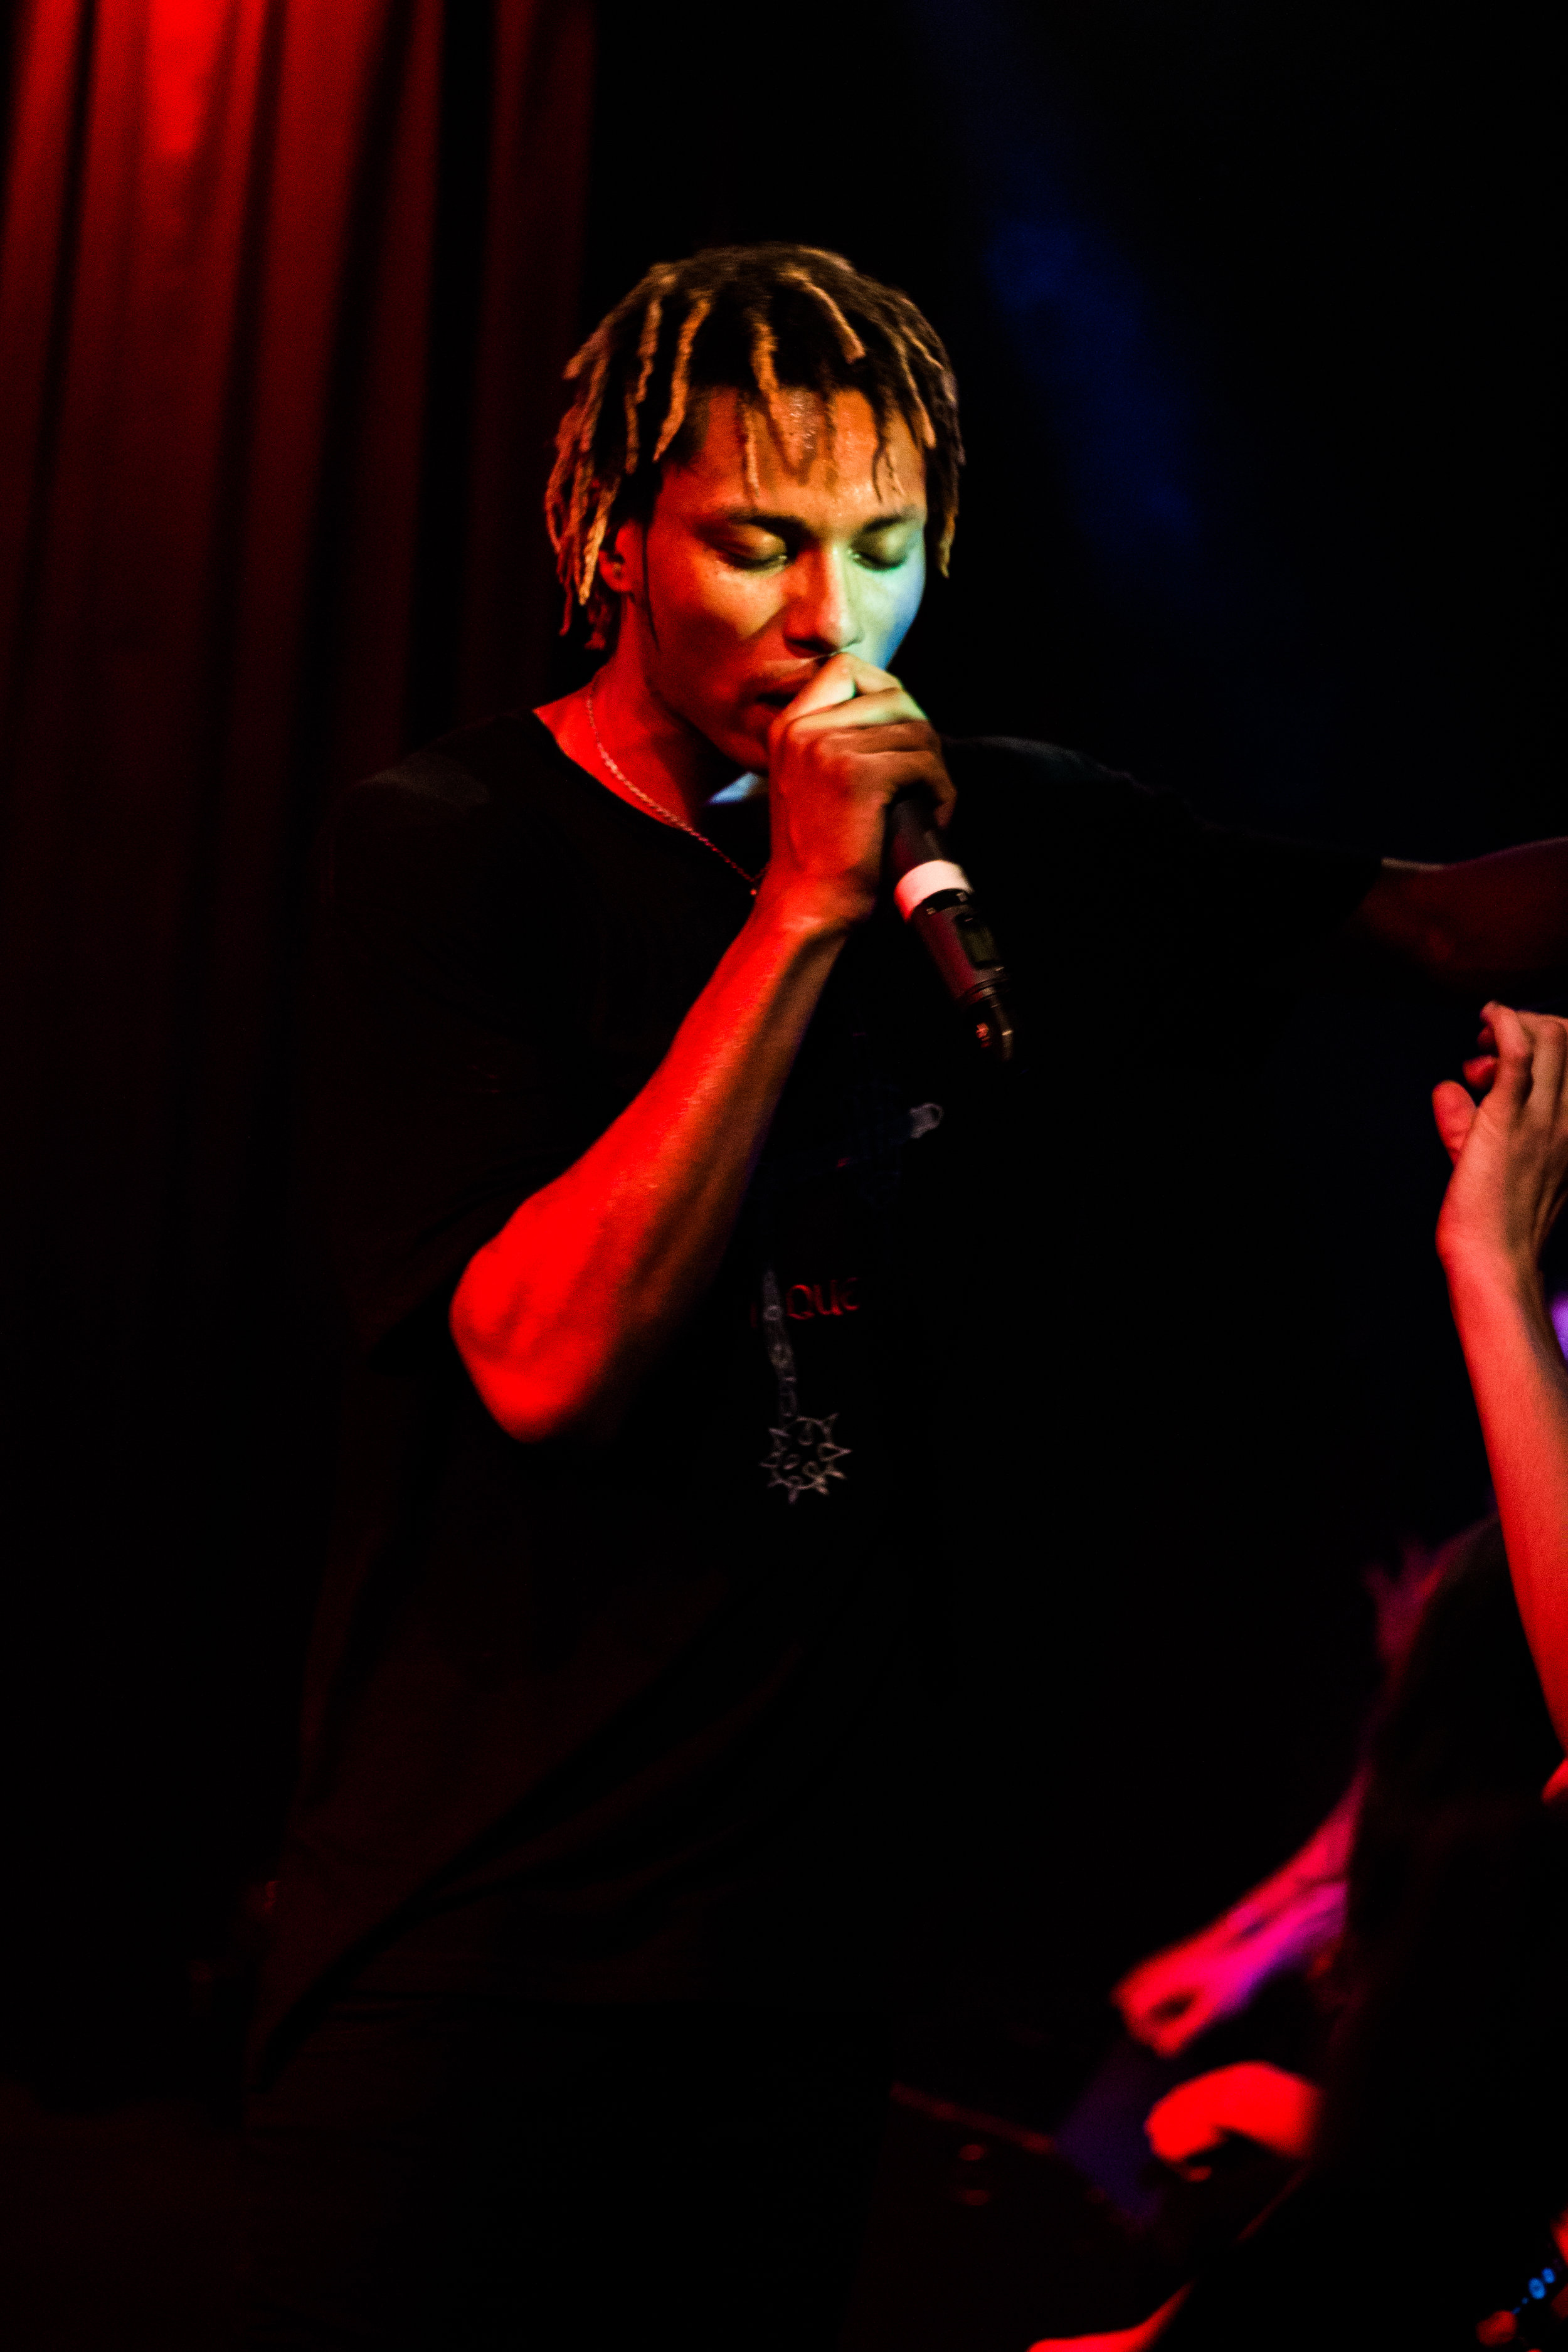 Night Lovell performing in Exil, Zurich. 2017.